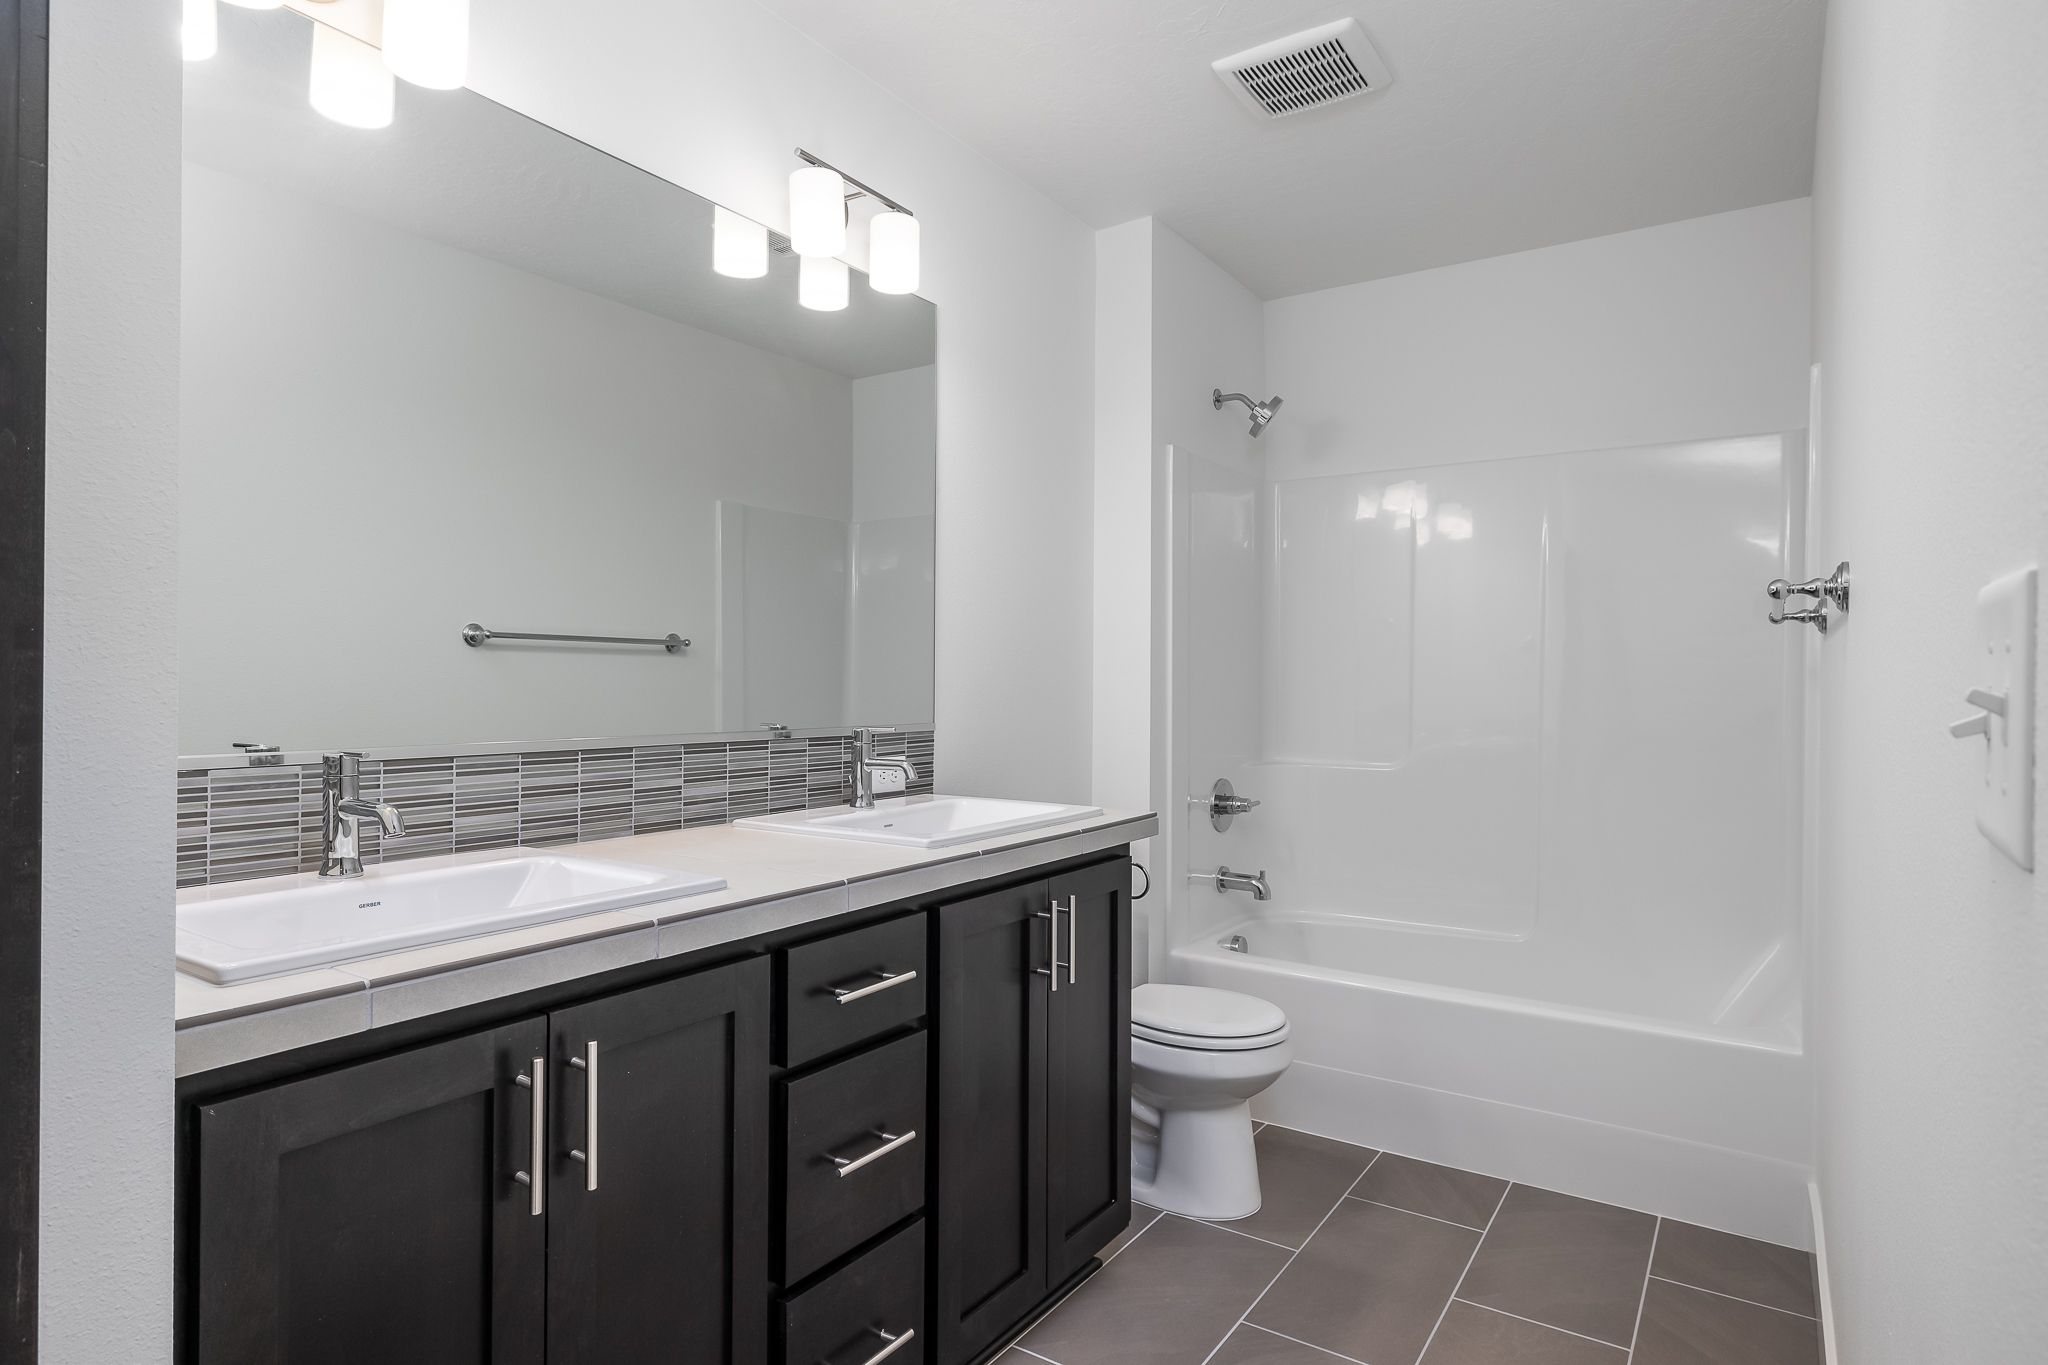 Bathroom featured in the Grandview By New Tradition Homes in Richland, WA